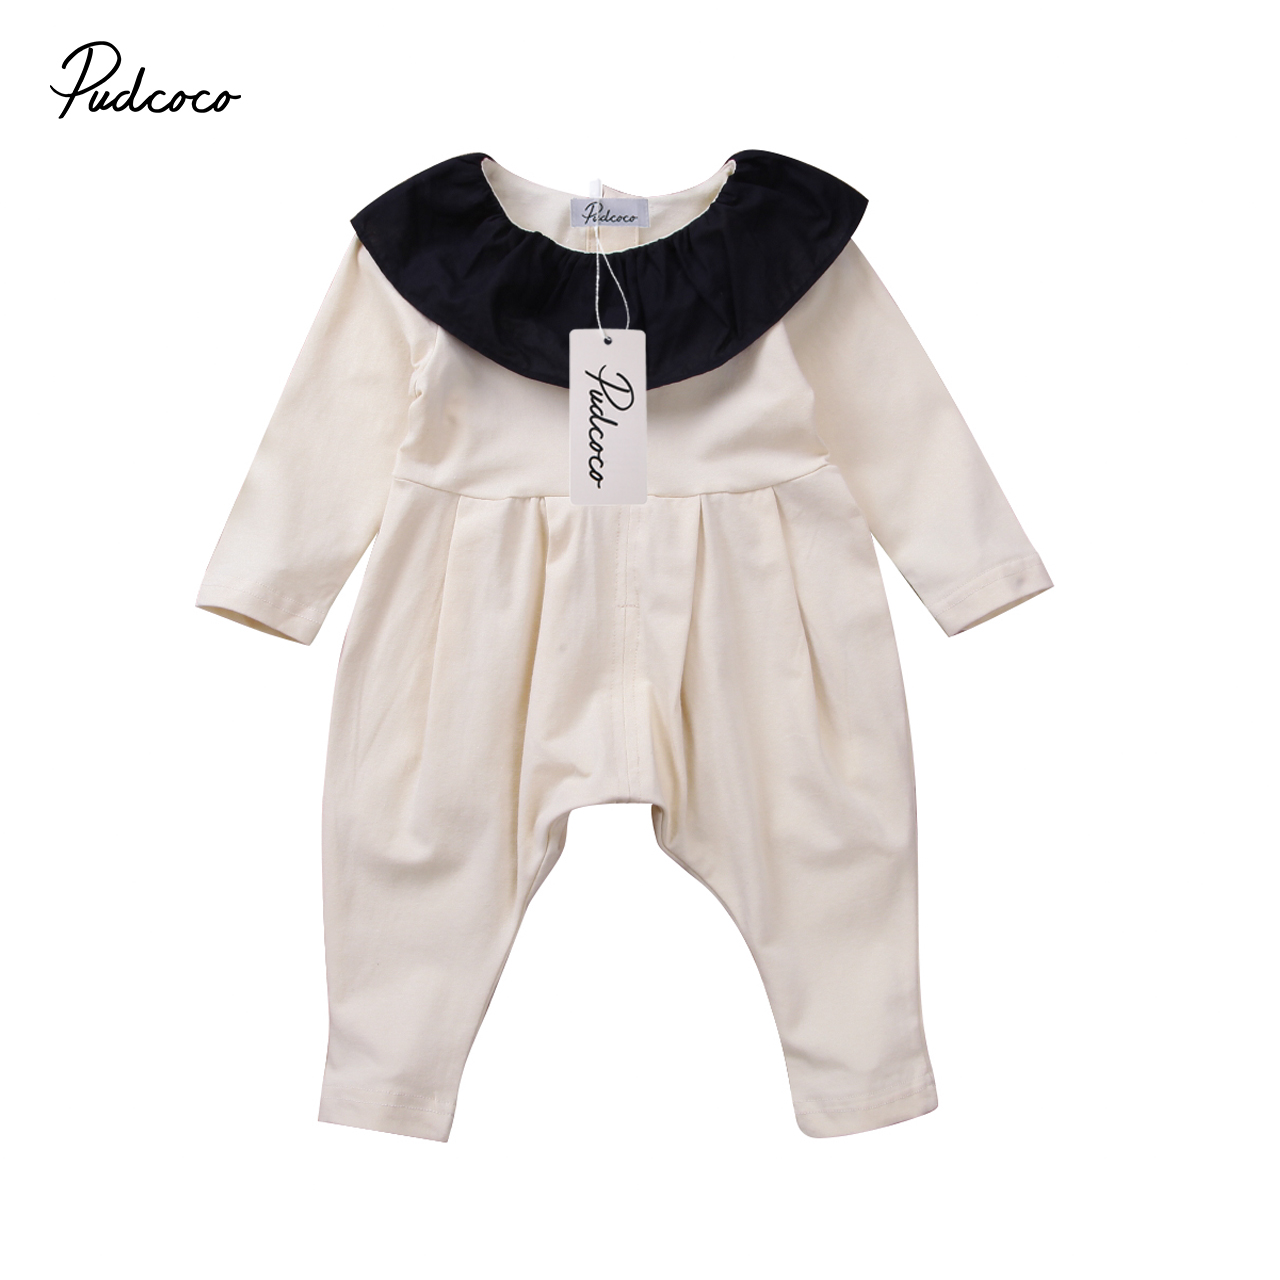 Pudcoco Newborn Baby Girl Ruffle Collar Long Sleeve Romper Playsuit Harem Pants Toddler Winter Clothes Outfit 3pcs newborn infant baby girl thanksgiving clothes set playsuit romper short pants bowknot outfit set